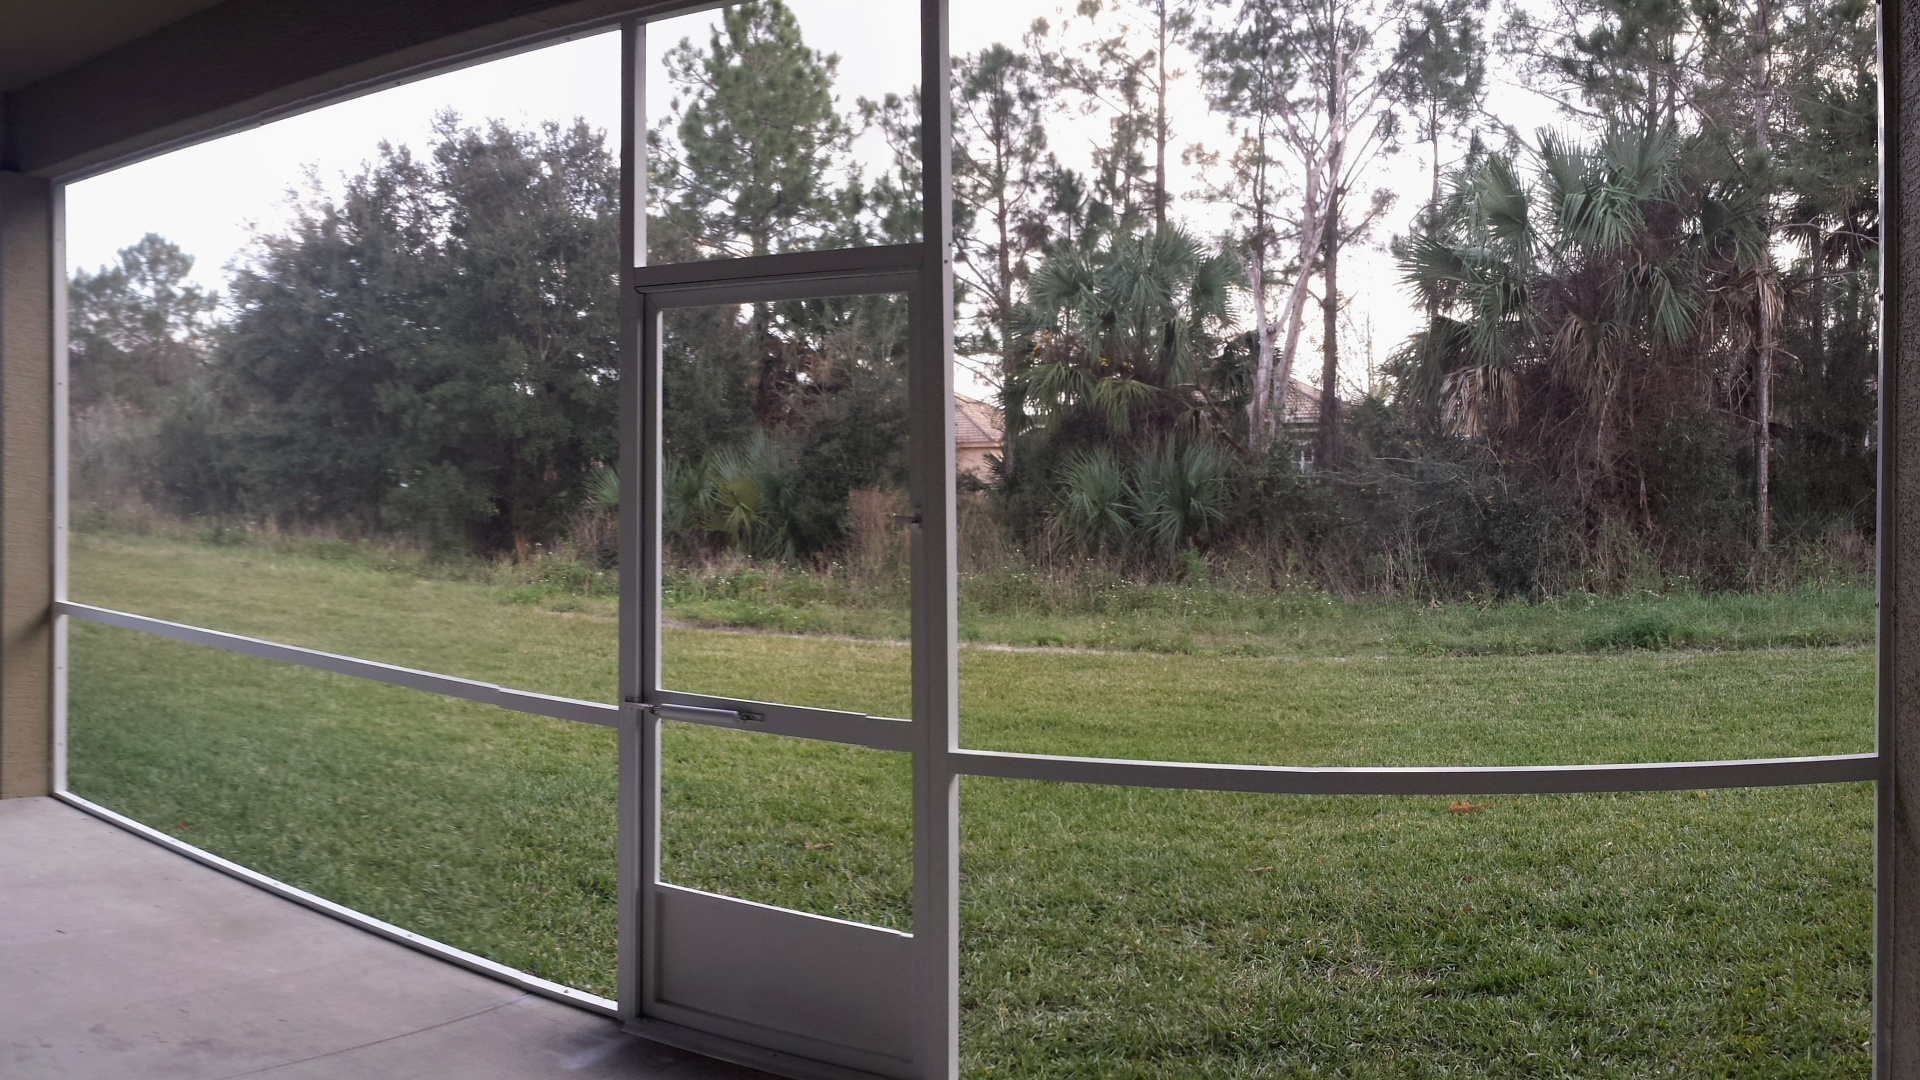 patio-screen-installation-new-smyrna-beach-08-1080p.jpg